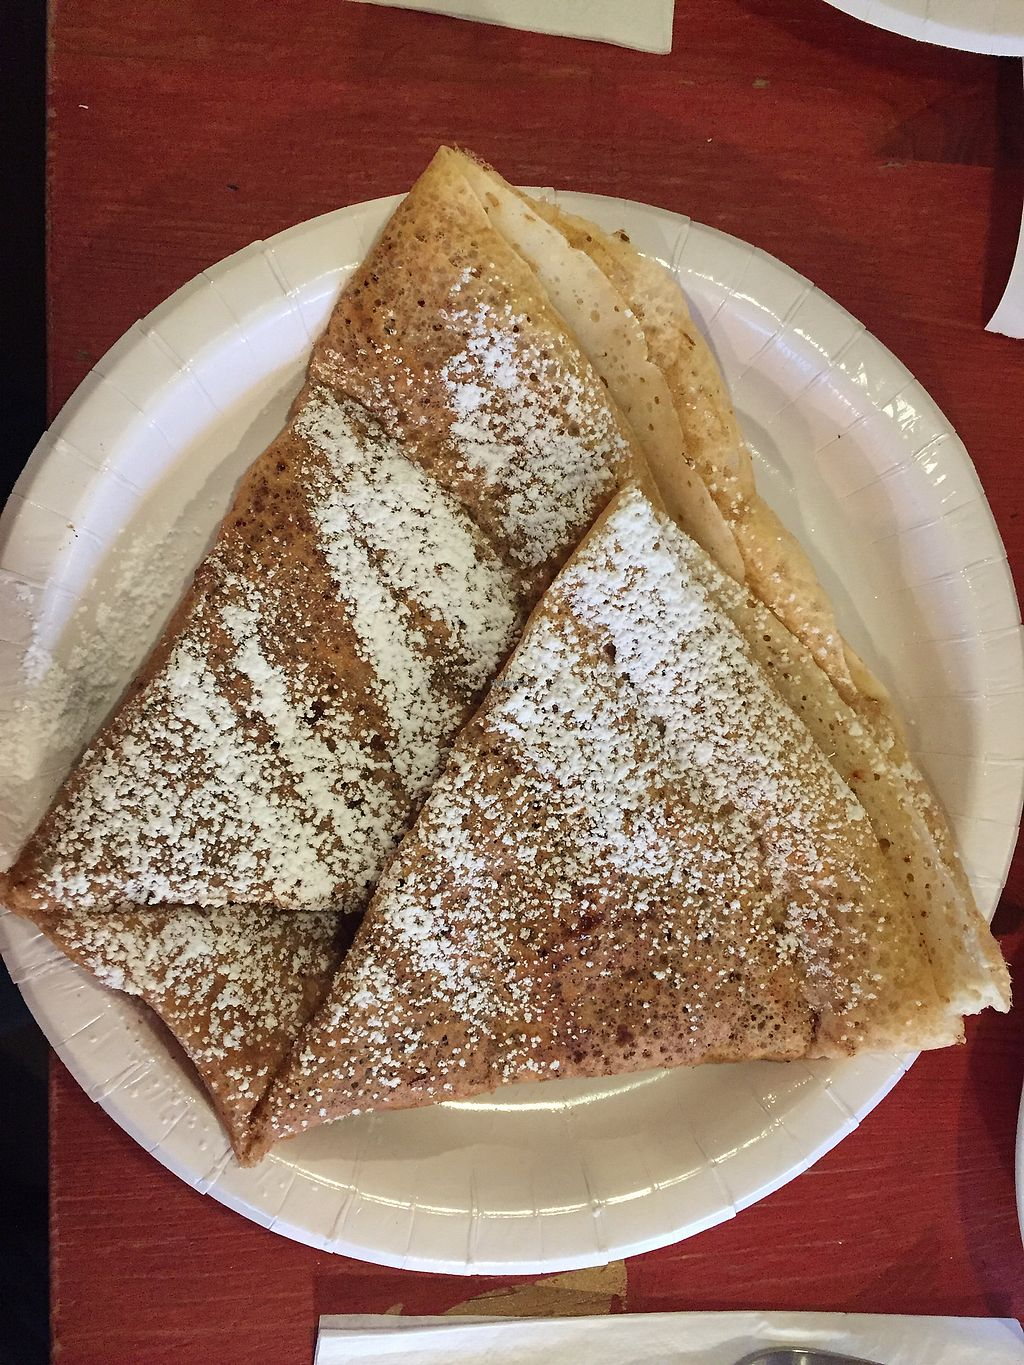 "Photo of Eldur og Is - Fire and Ice  by <a href=""/members/profile/AnniR"">AnniR</a> <br/>Vegan Crepe with banana filling, cinnamon & sugar on top <br/> January 17, 2018  - <a href='/contact/abuse/image/58227/347588'>Report</a>"